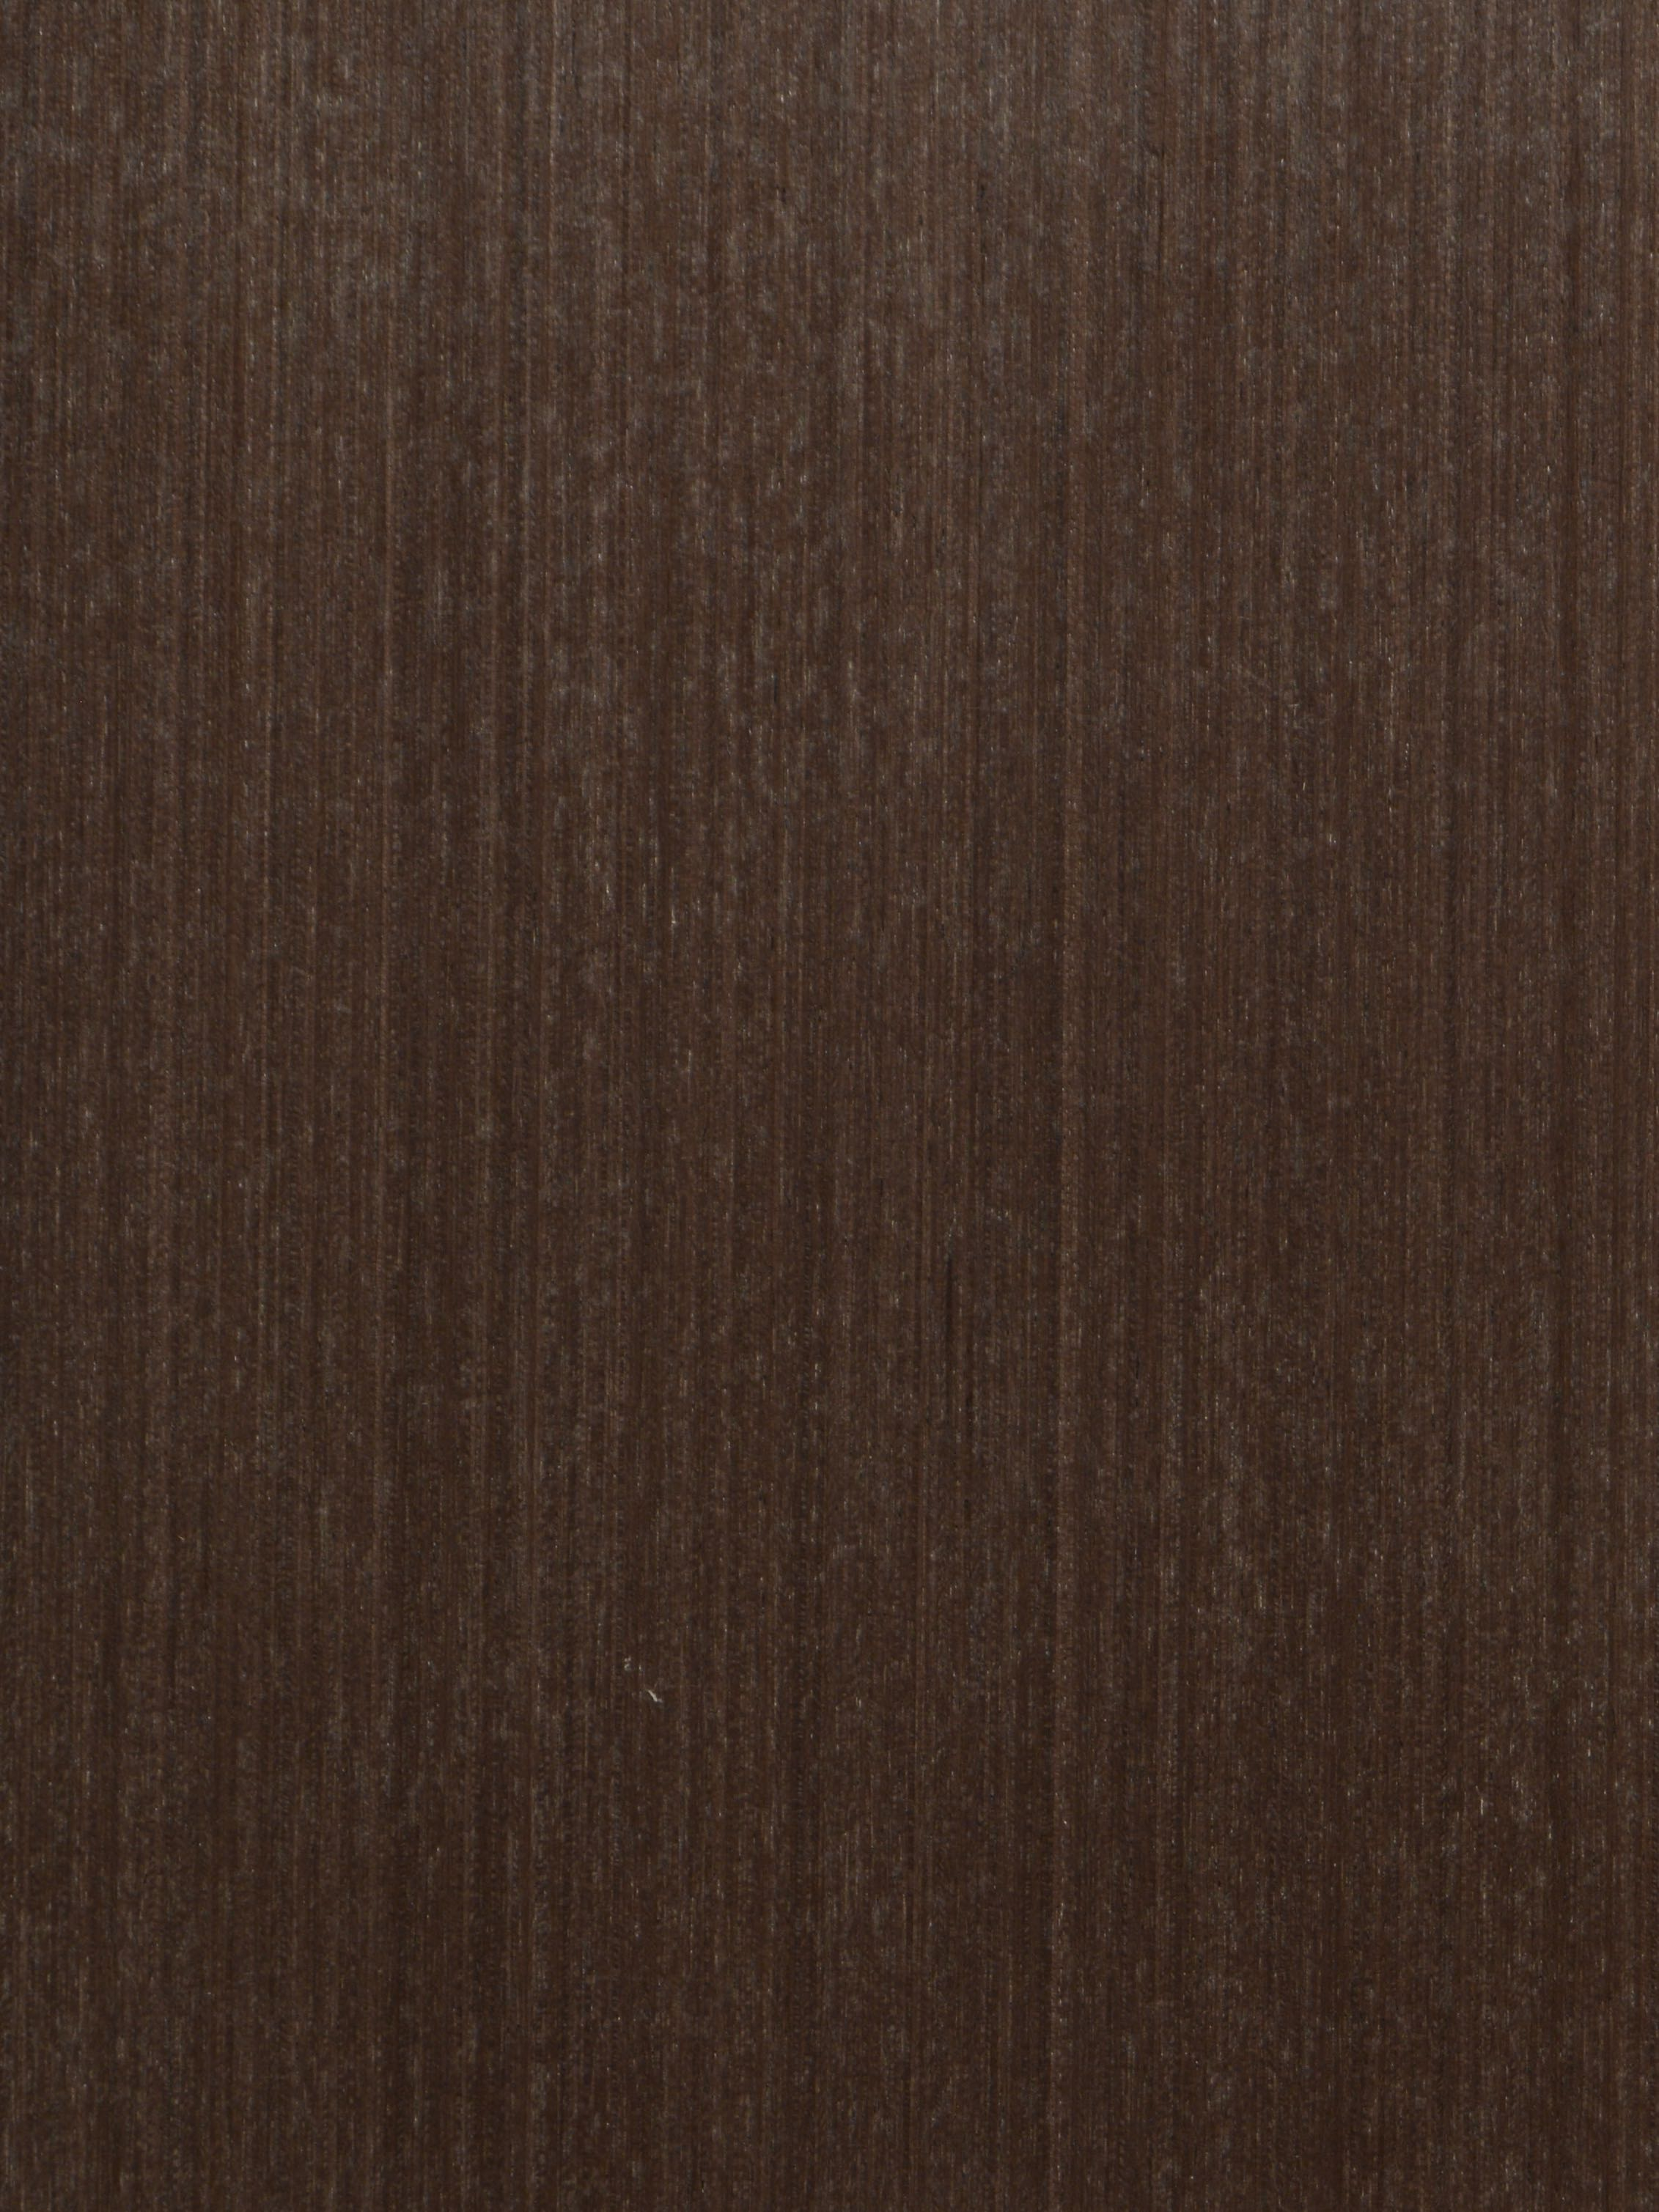 Wenge Wood Kitchen Cabinets